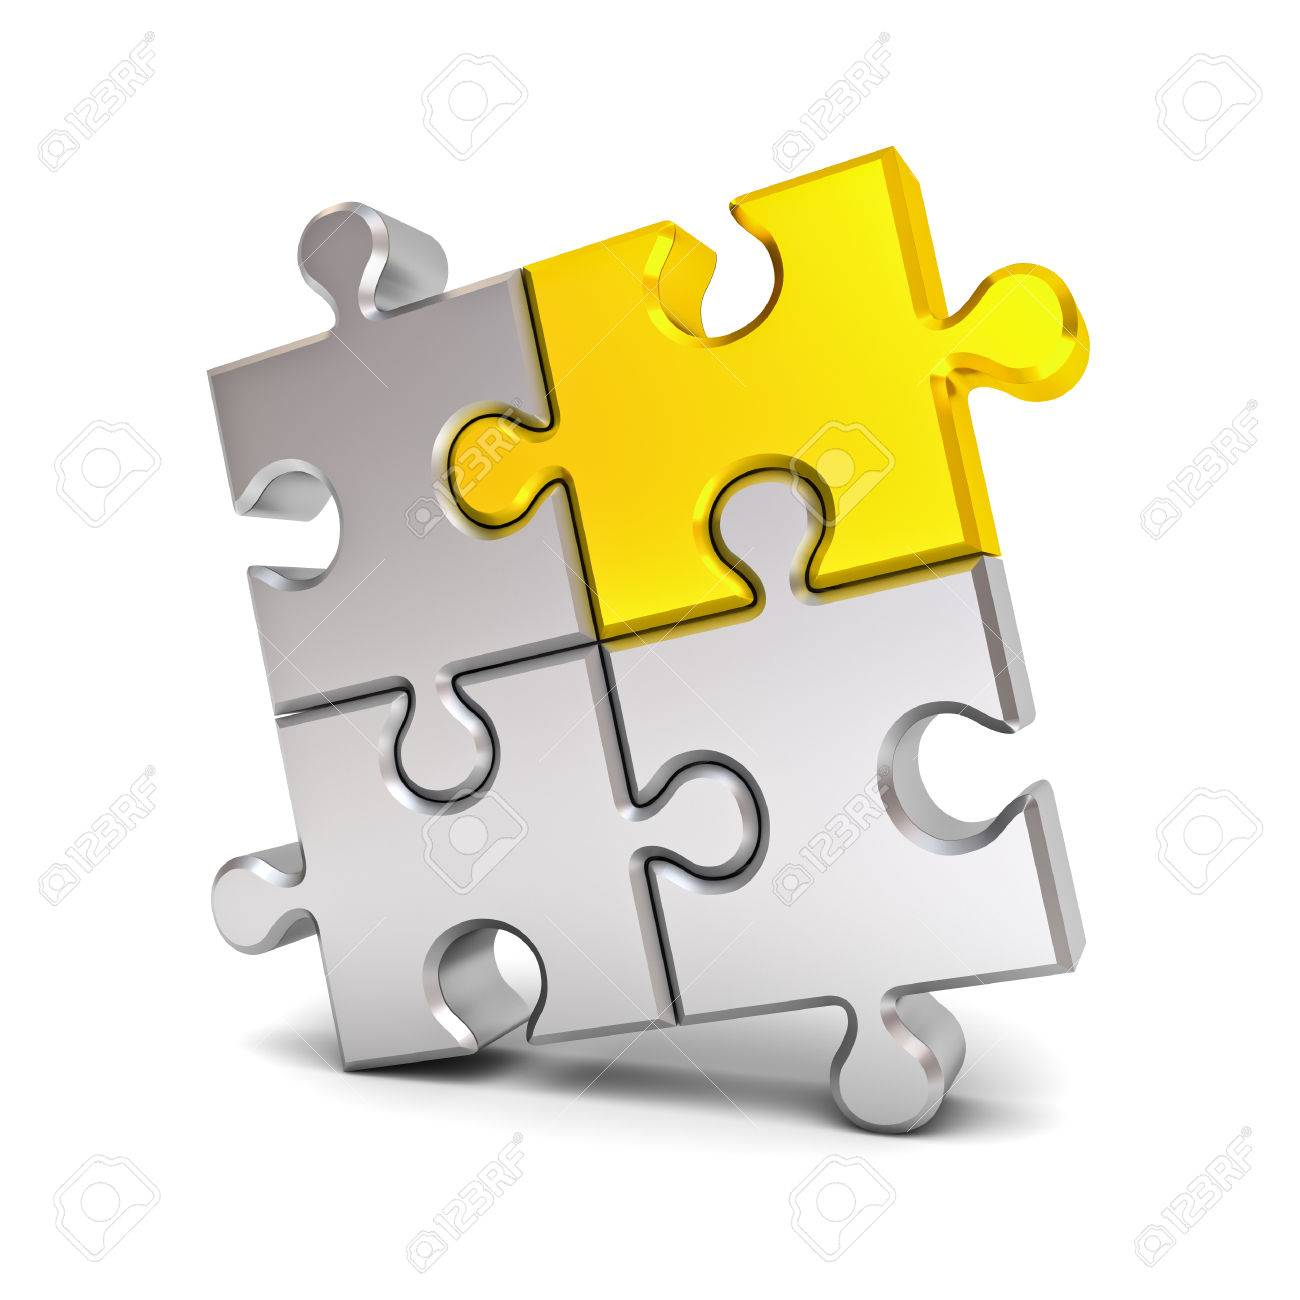 Gold Jigsaw Puzzle Piece Stand Out From The Crowd Different Idea Concept Isolated Over White Background